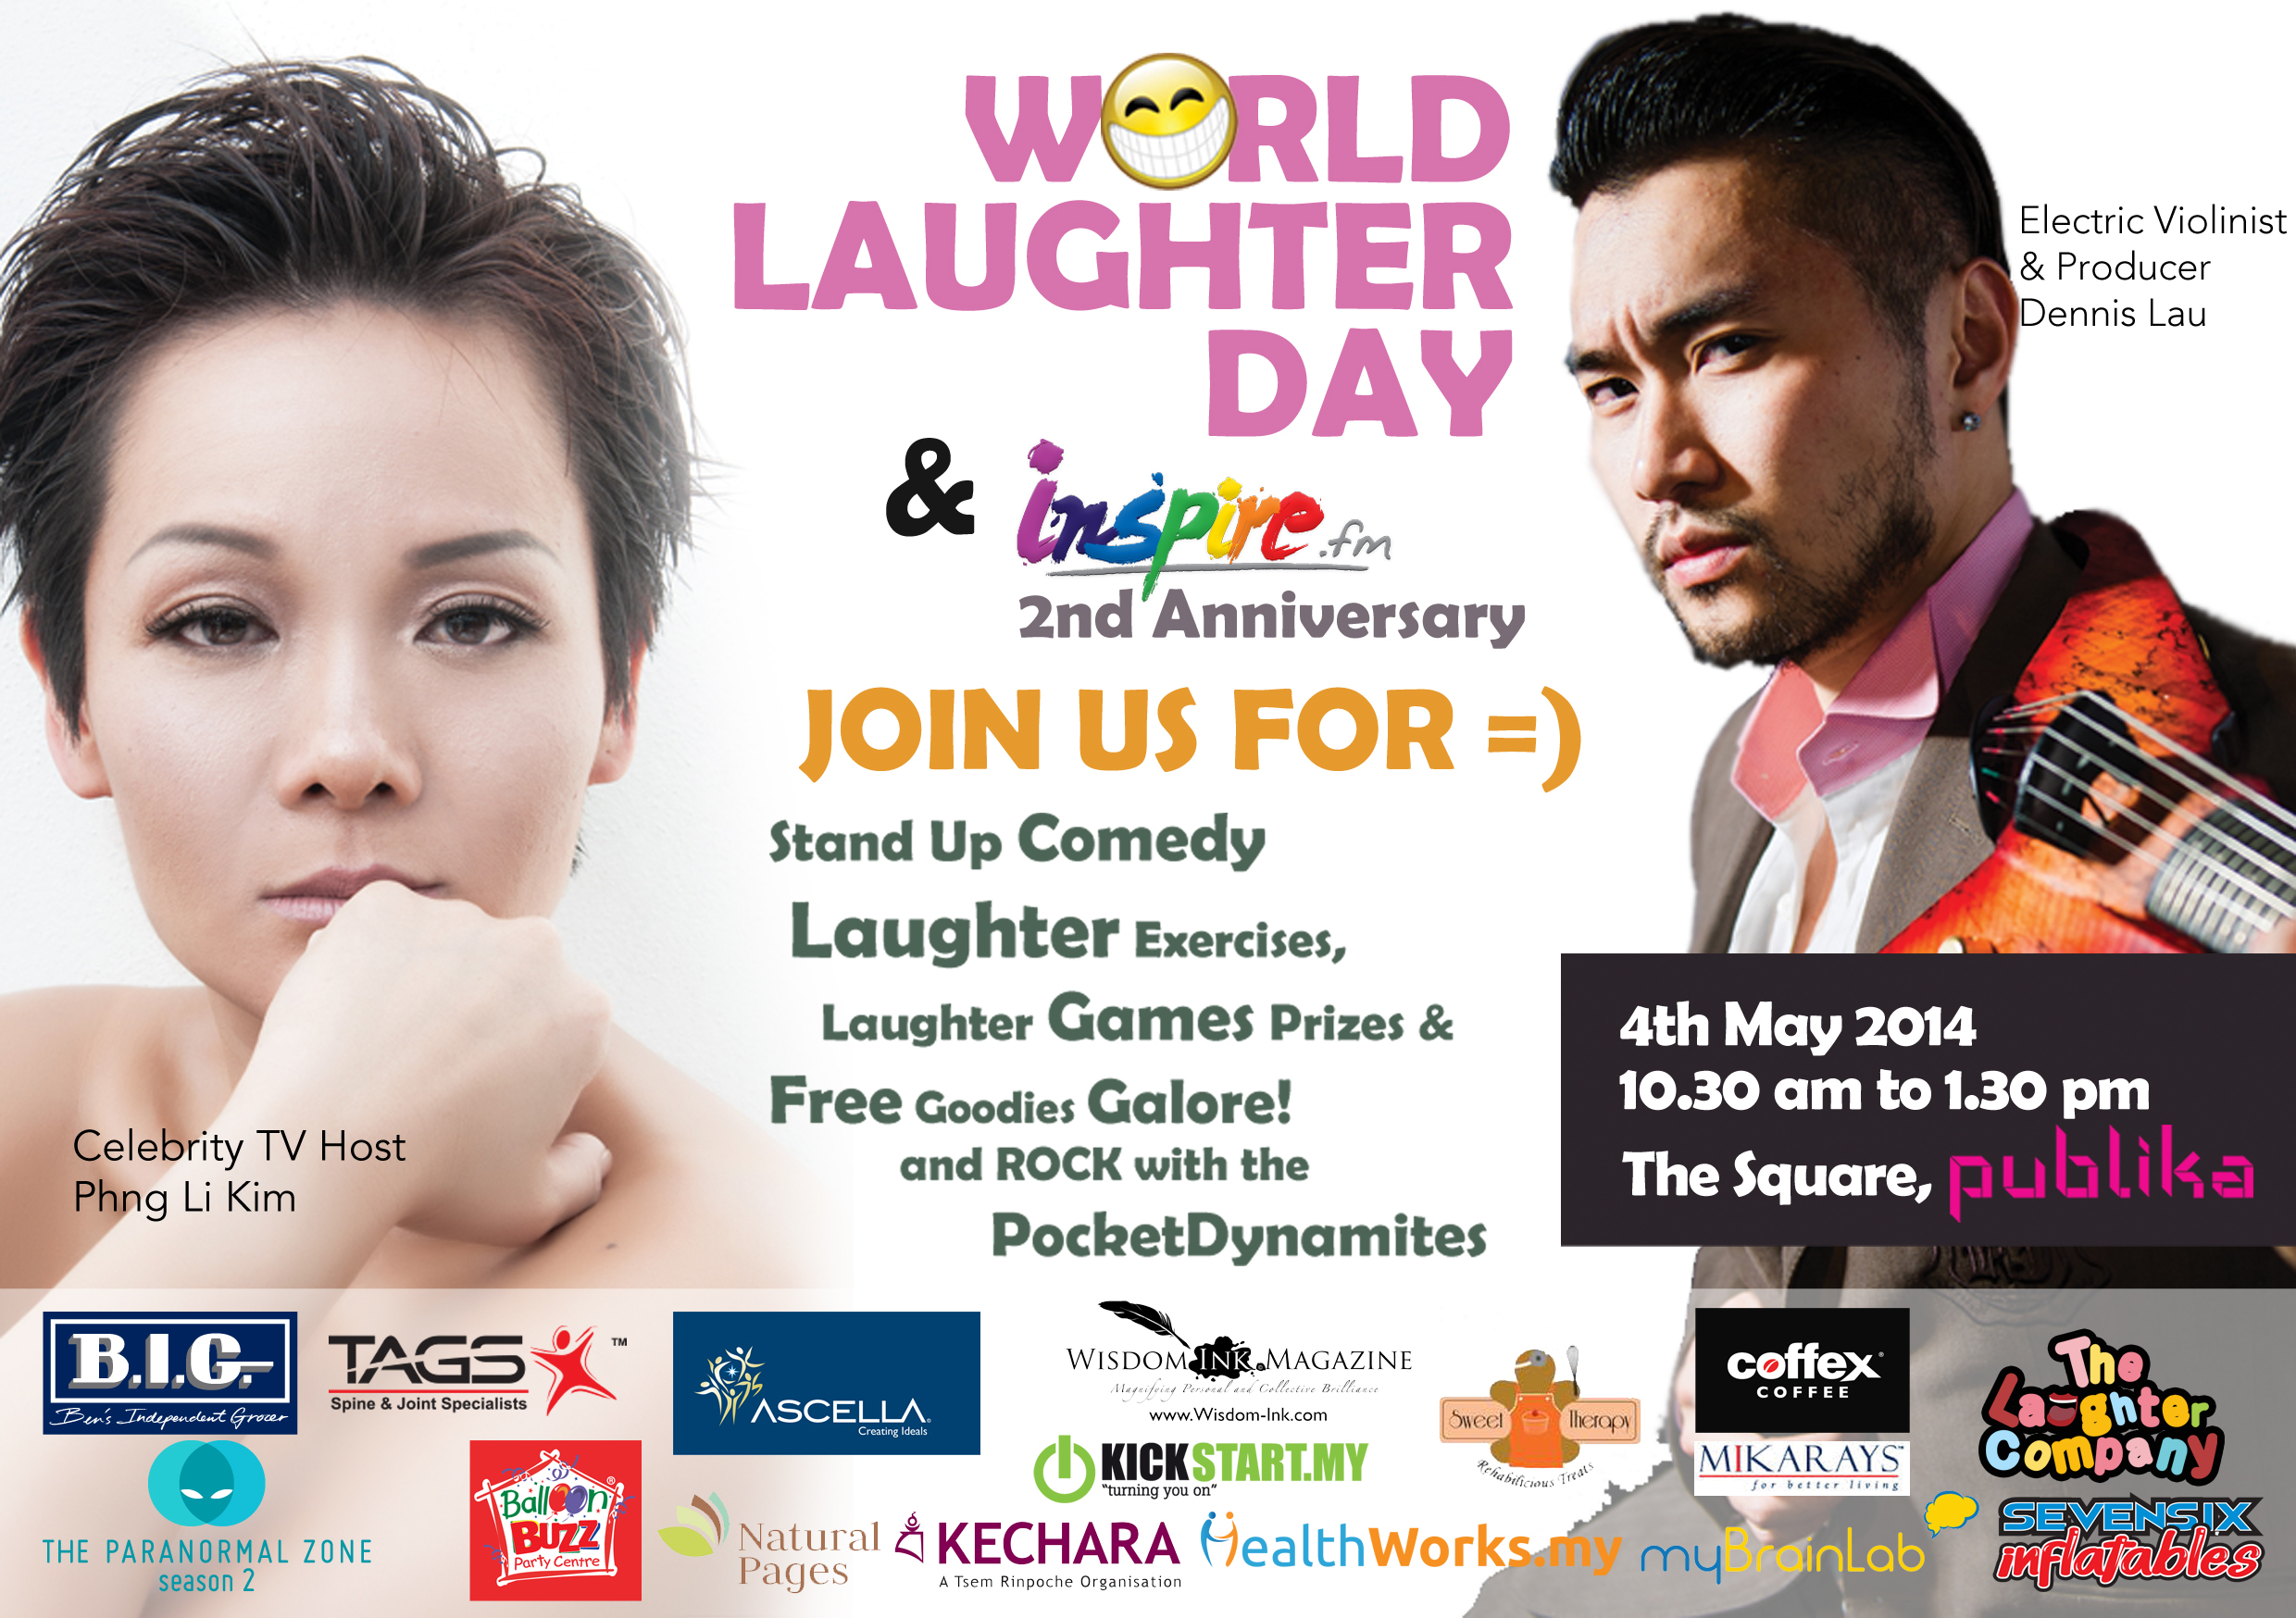 World Laughter Day @ Publika